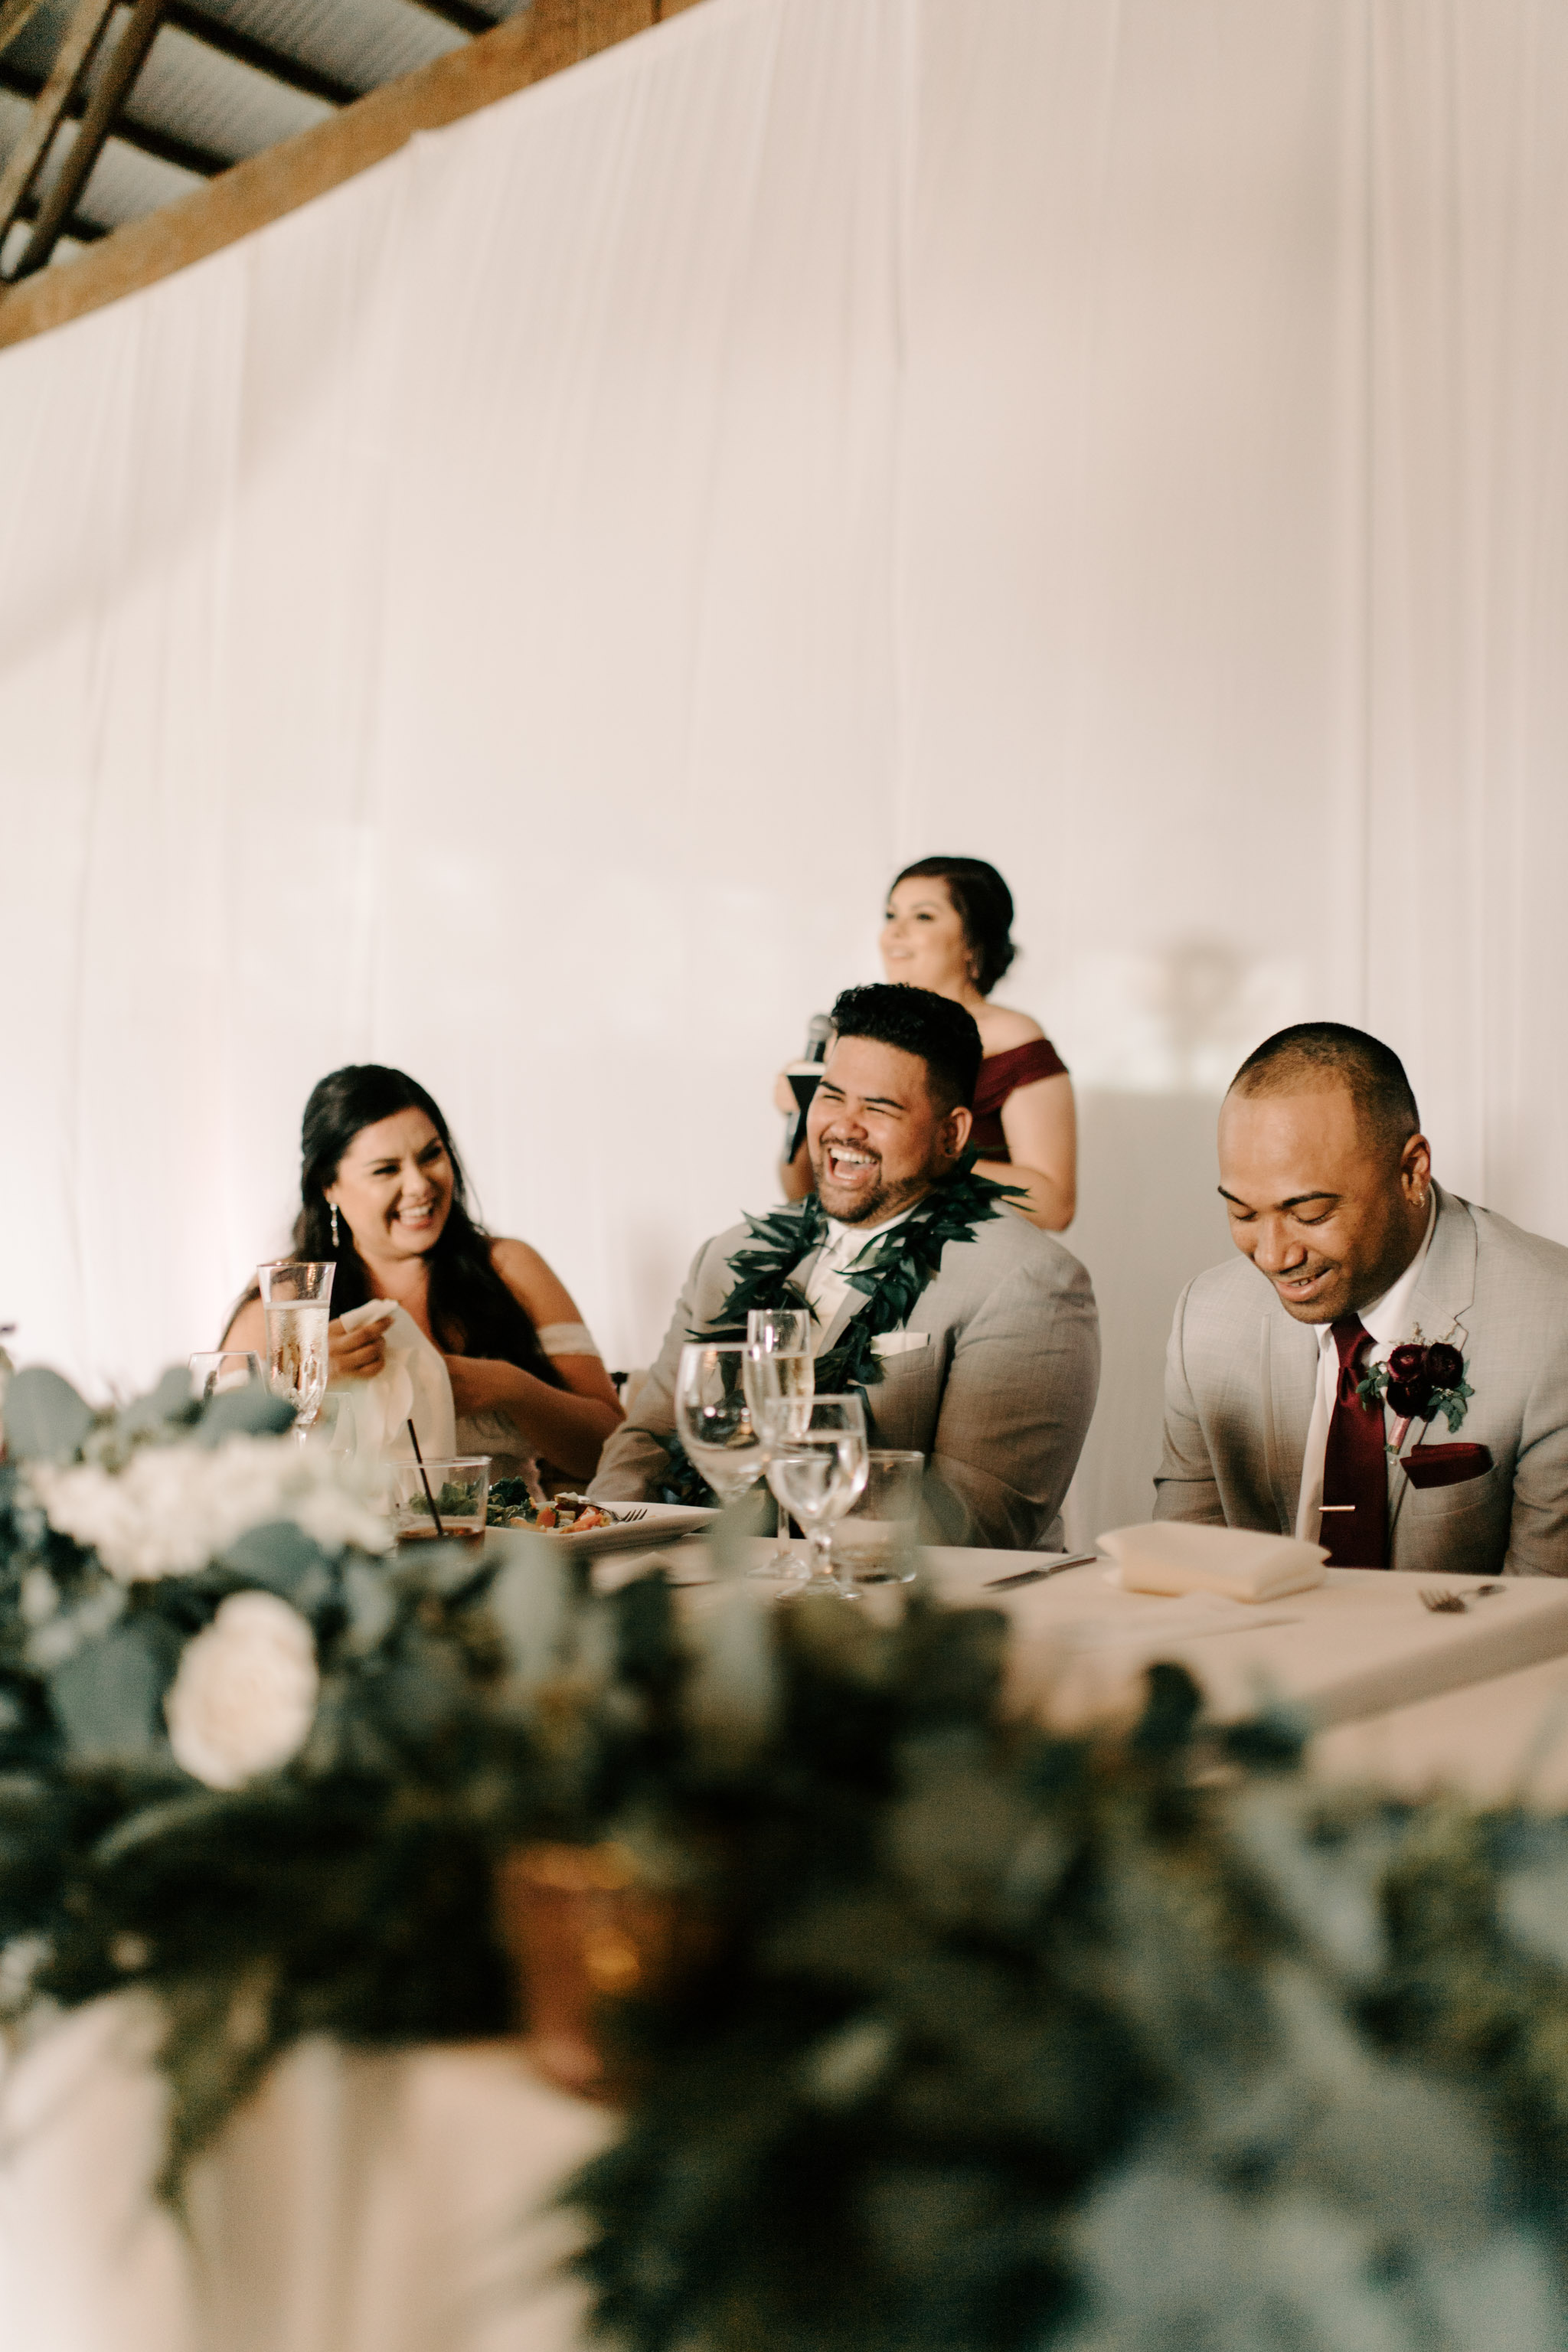 Bride and Groom's Reactions During the Toasts - Hawaii Barn Wedding Reception - Sunset Ranch Hawaii Wedding By Oahu Wedding Photographer Desiree Leilani